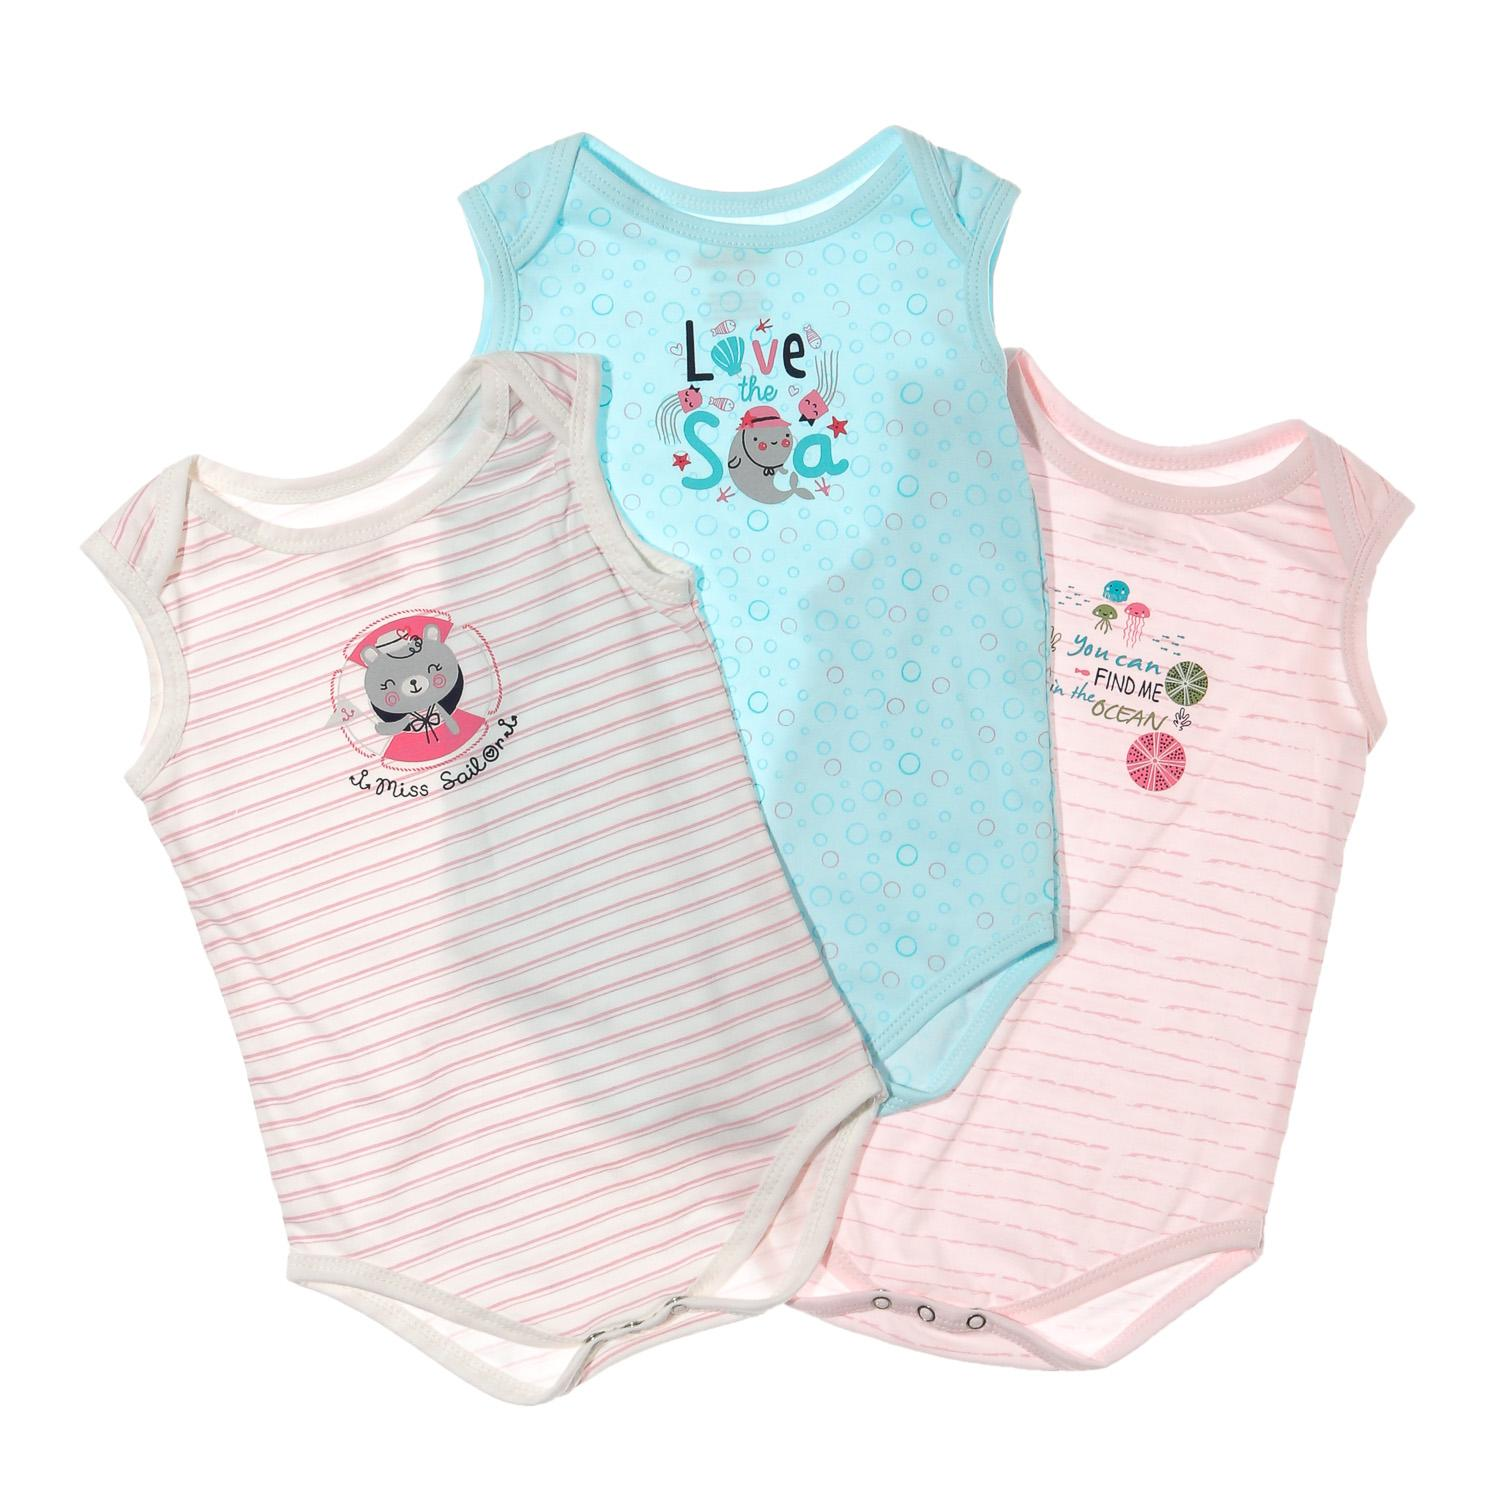 83719ae0e3fa Girls Clothing and Accessories for sale - Baby Clothing Accessories ...